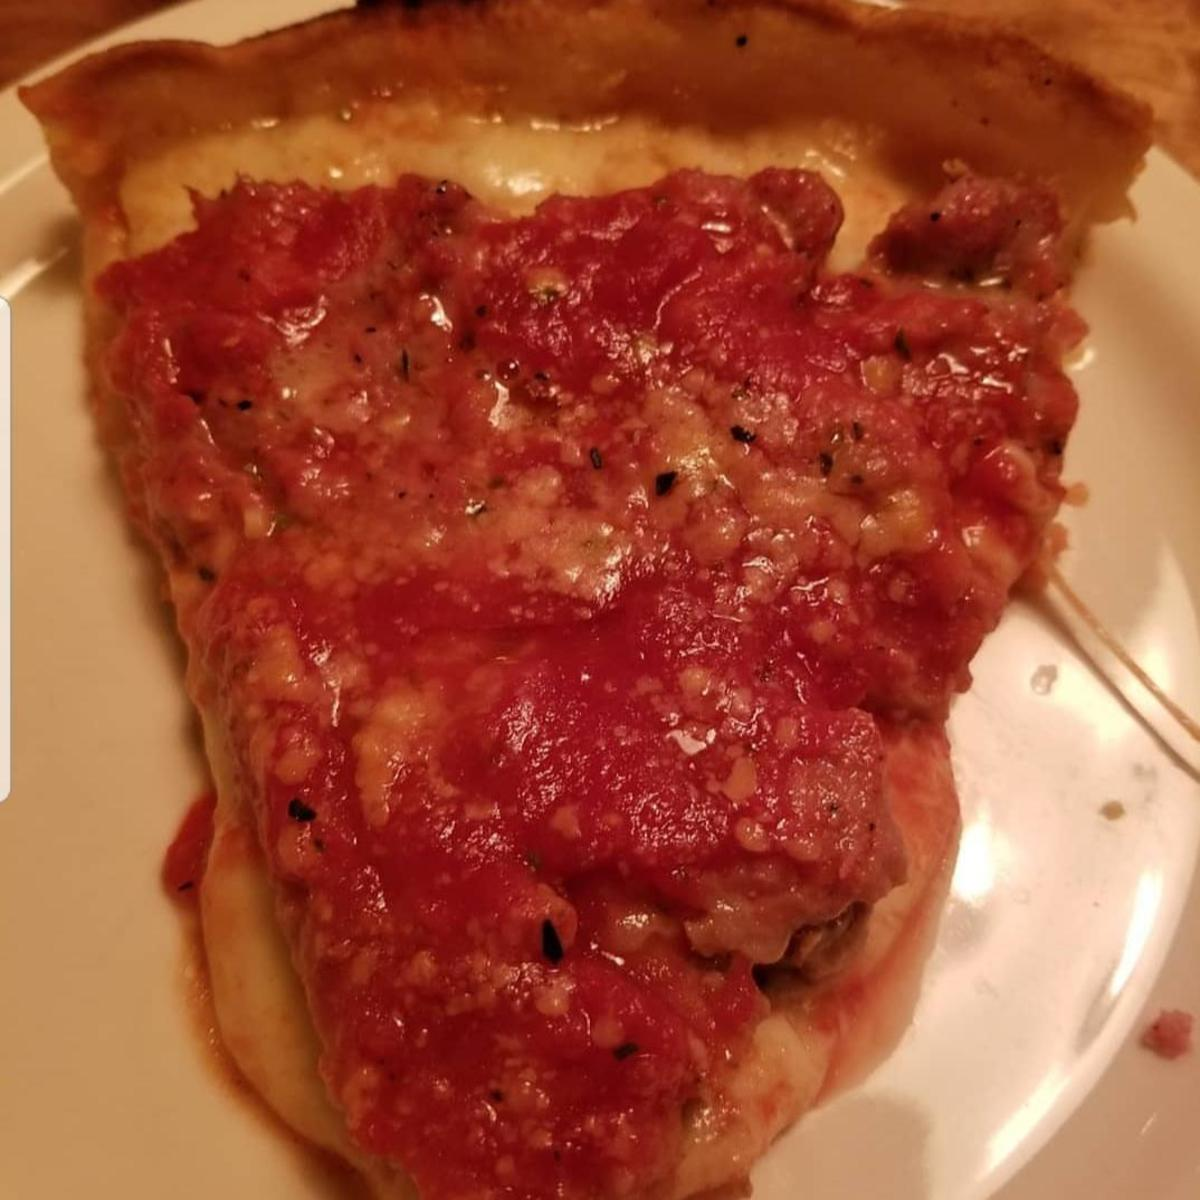 Close-up of a Lou Malnati's slice